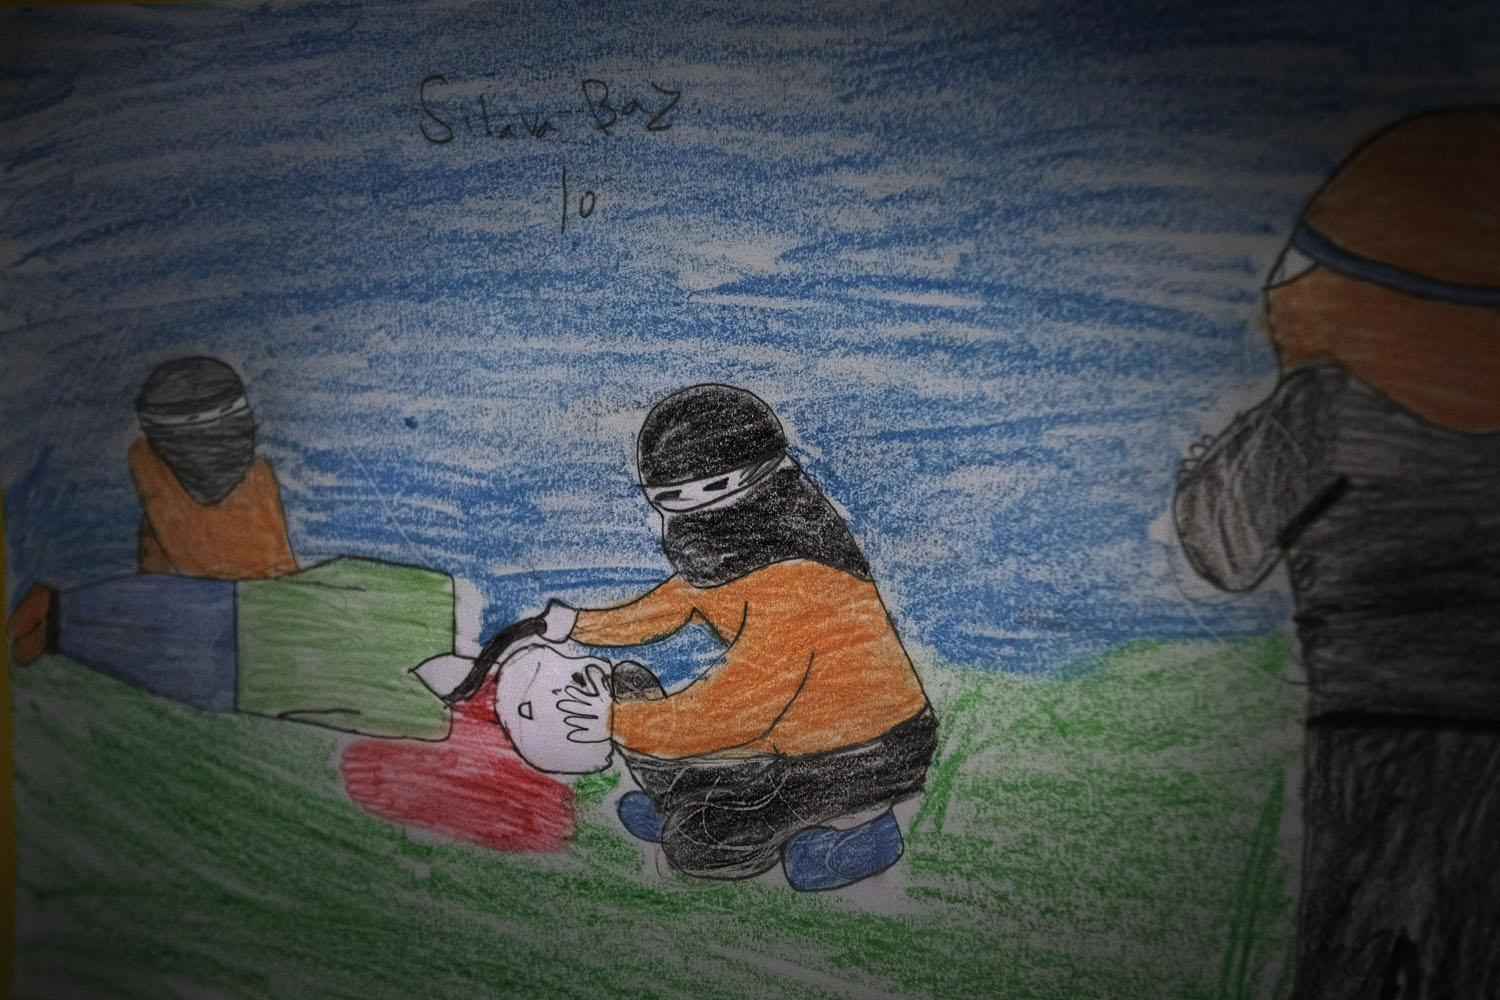 10-year-old Silava Baz, from the city of Kobane, drew this scene of a beheading at the hands of ISIS in a refugee camp in Suruç near the Syrian border (Turkey, 2015).